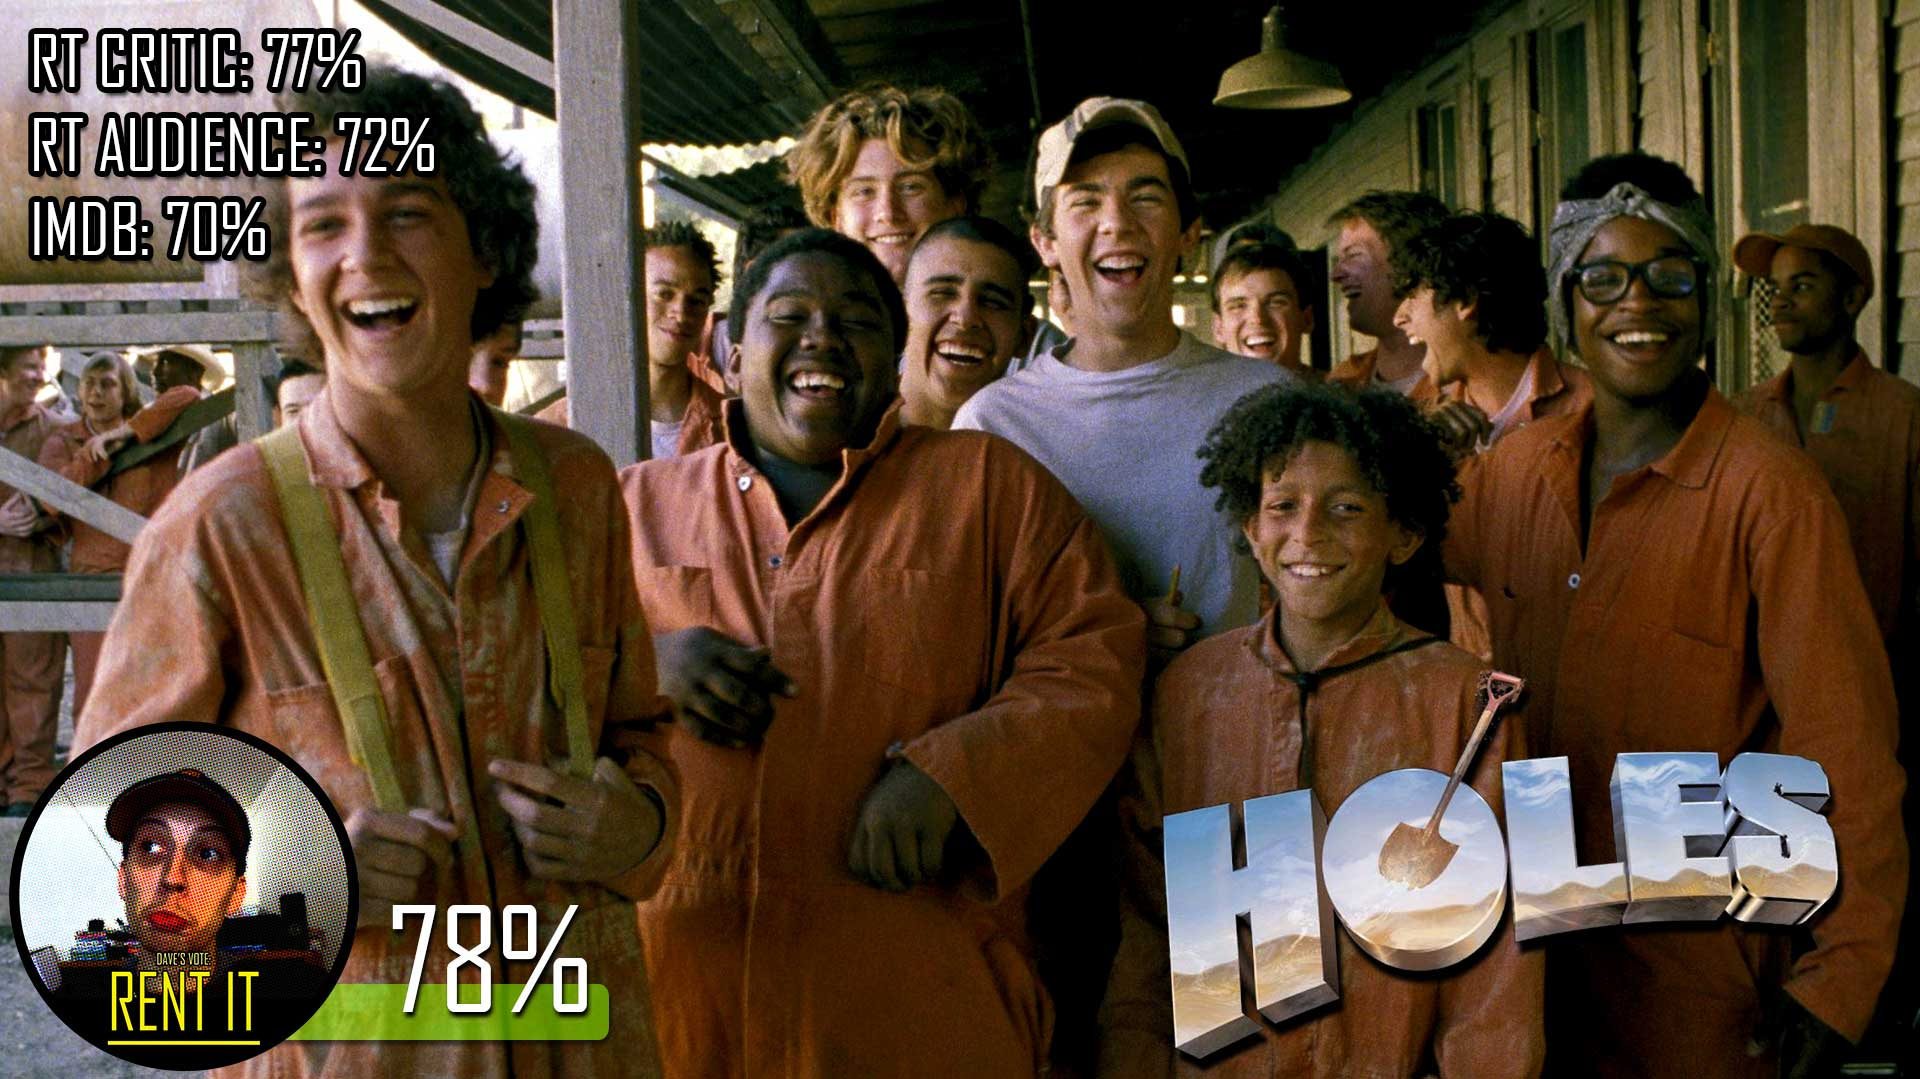 essay on holes the movie View essay - essay on holes by louis sachar from eng 30-1 at william aberhart high school holesbylouissachar projectbyxxxxxx throughout my life, i have watched a lot of movies.